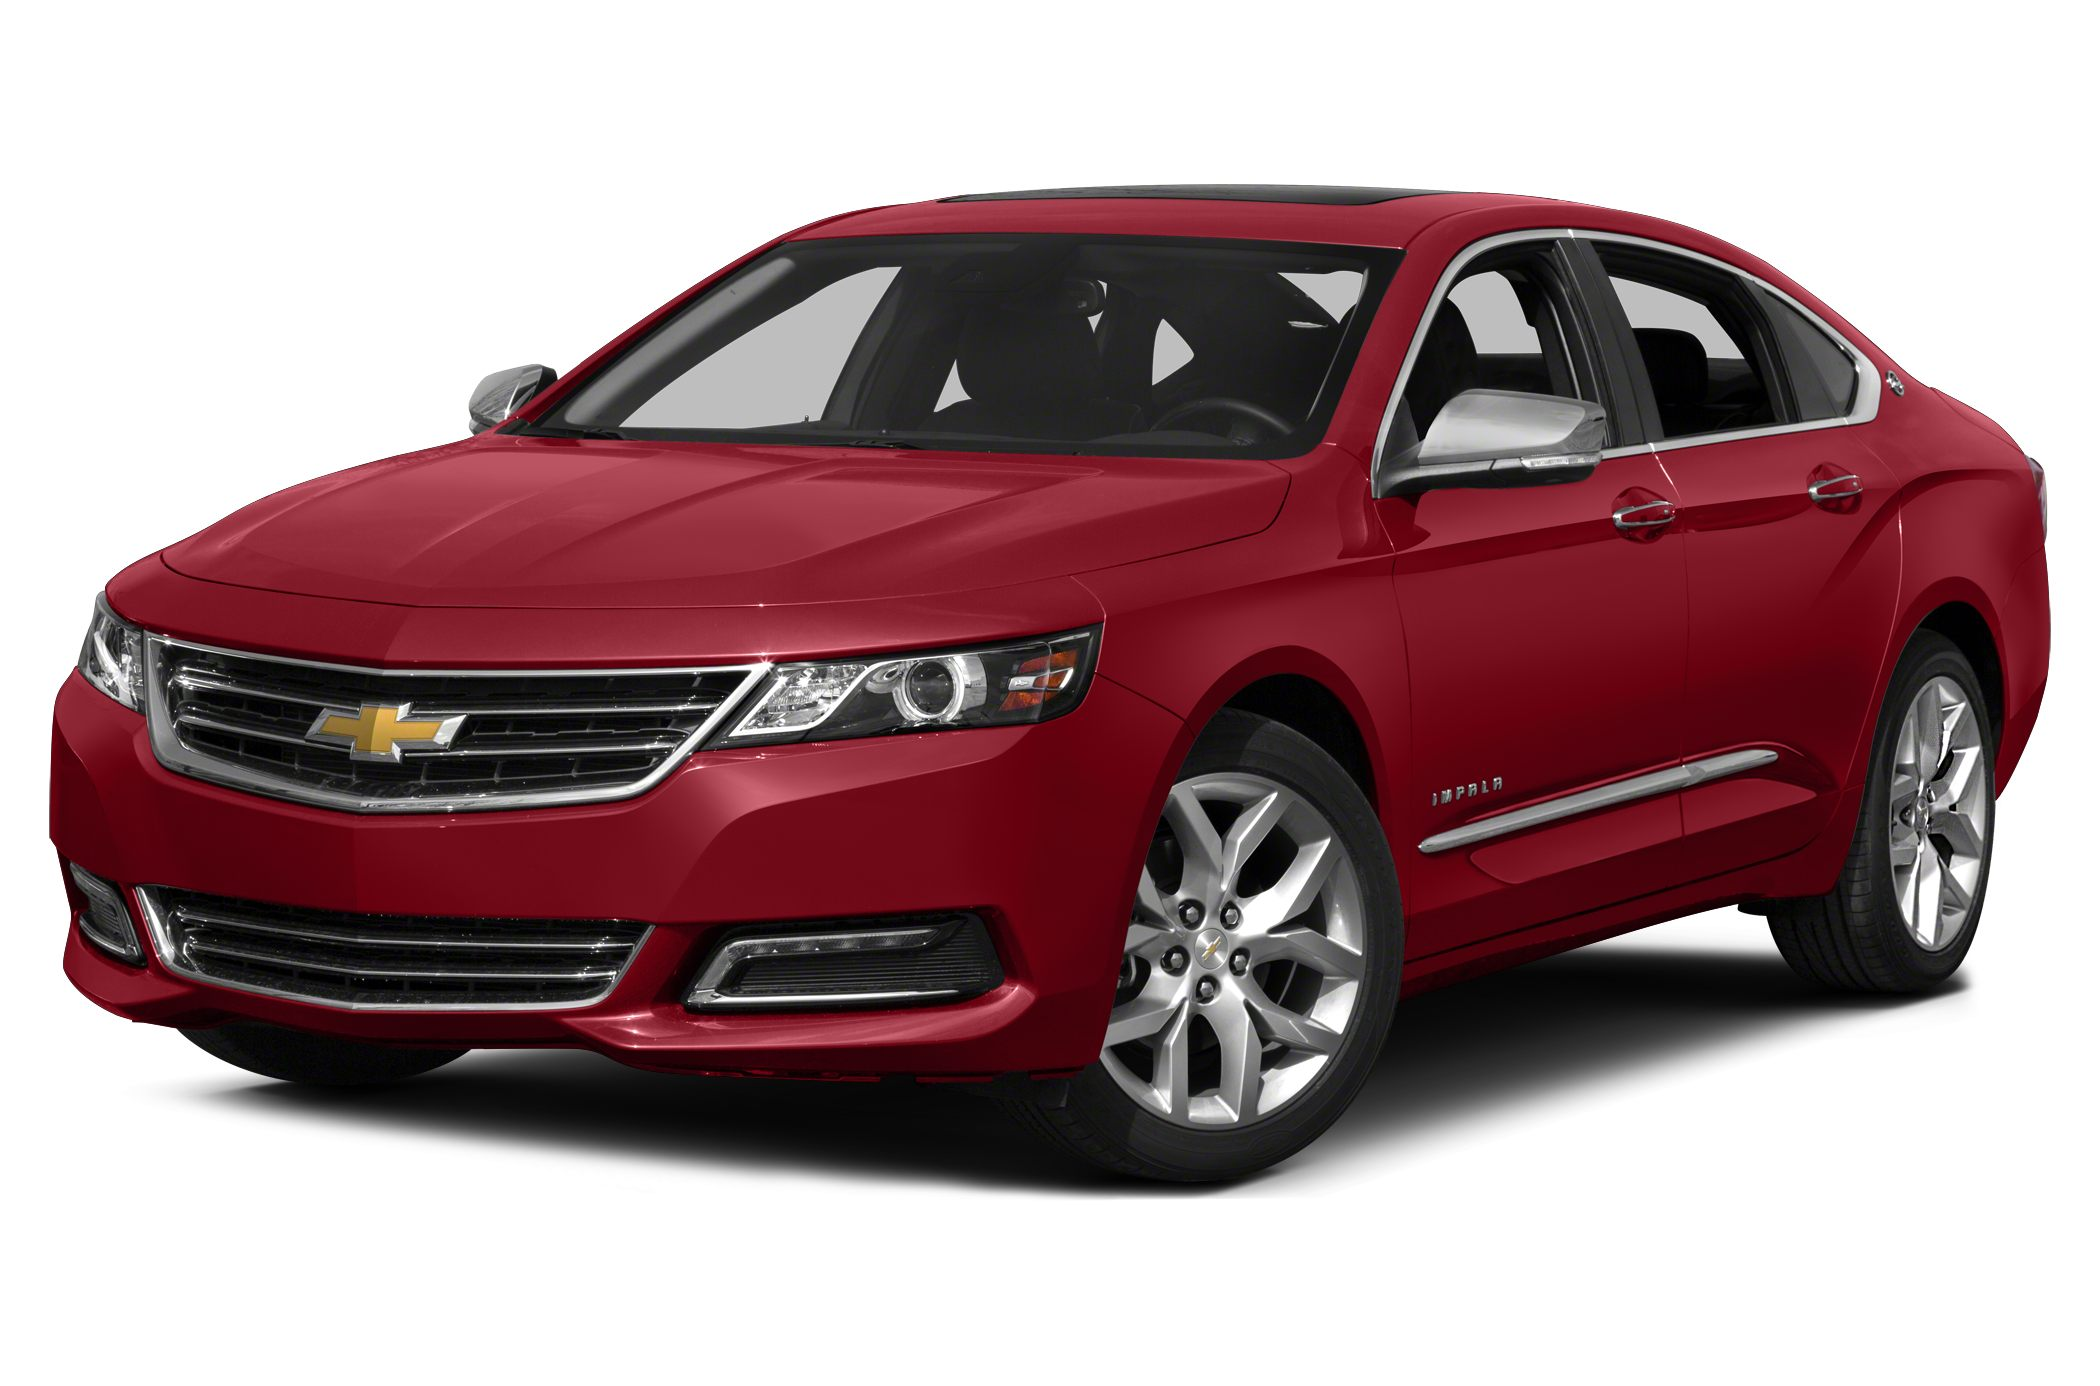 2015 Chevrolet Impala 2LZ Sedan for sale in West Plains for $37,260 with 0 miles.